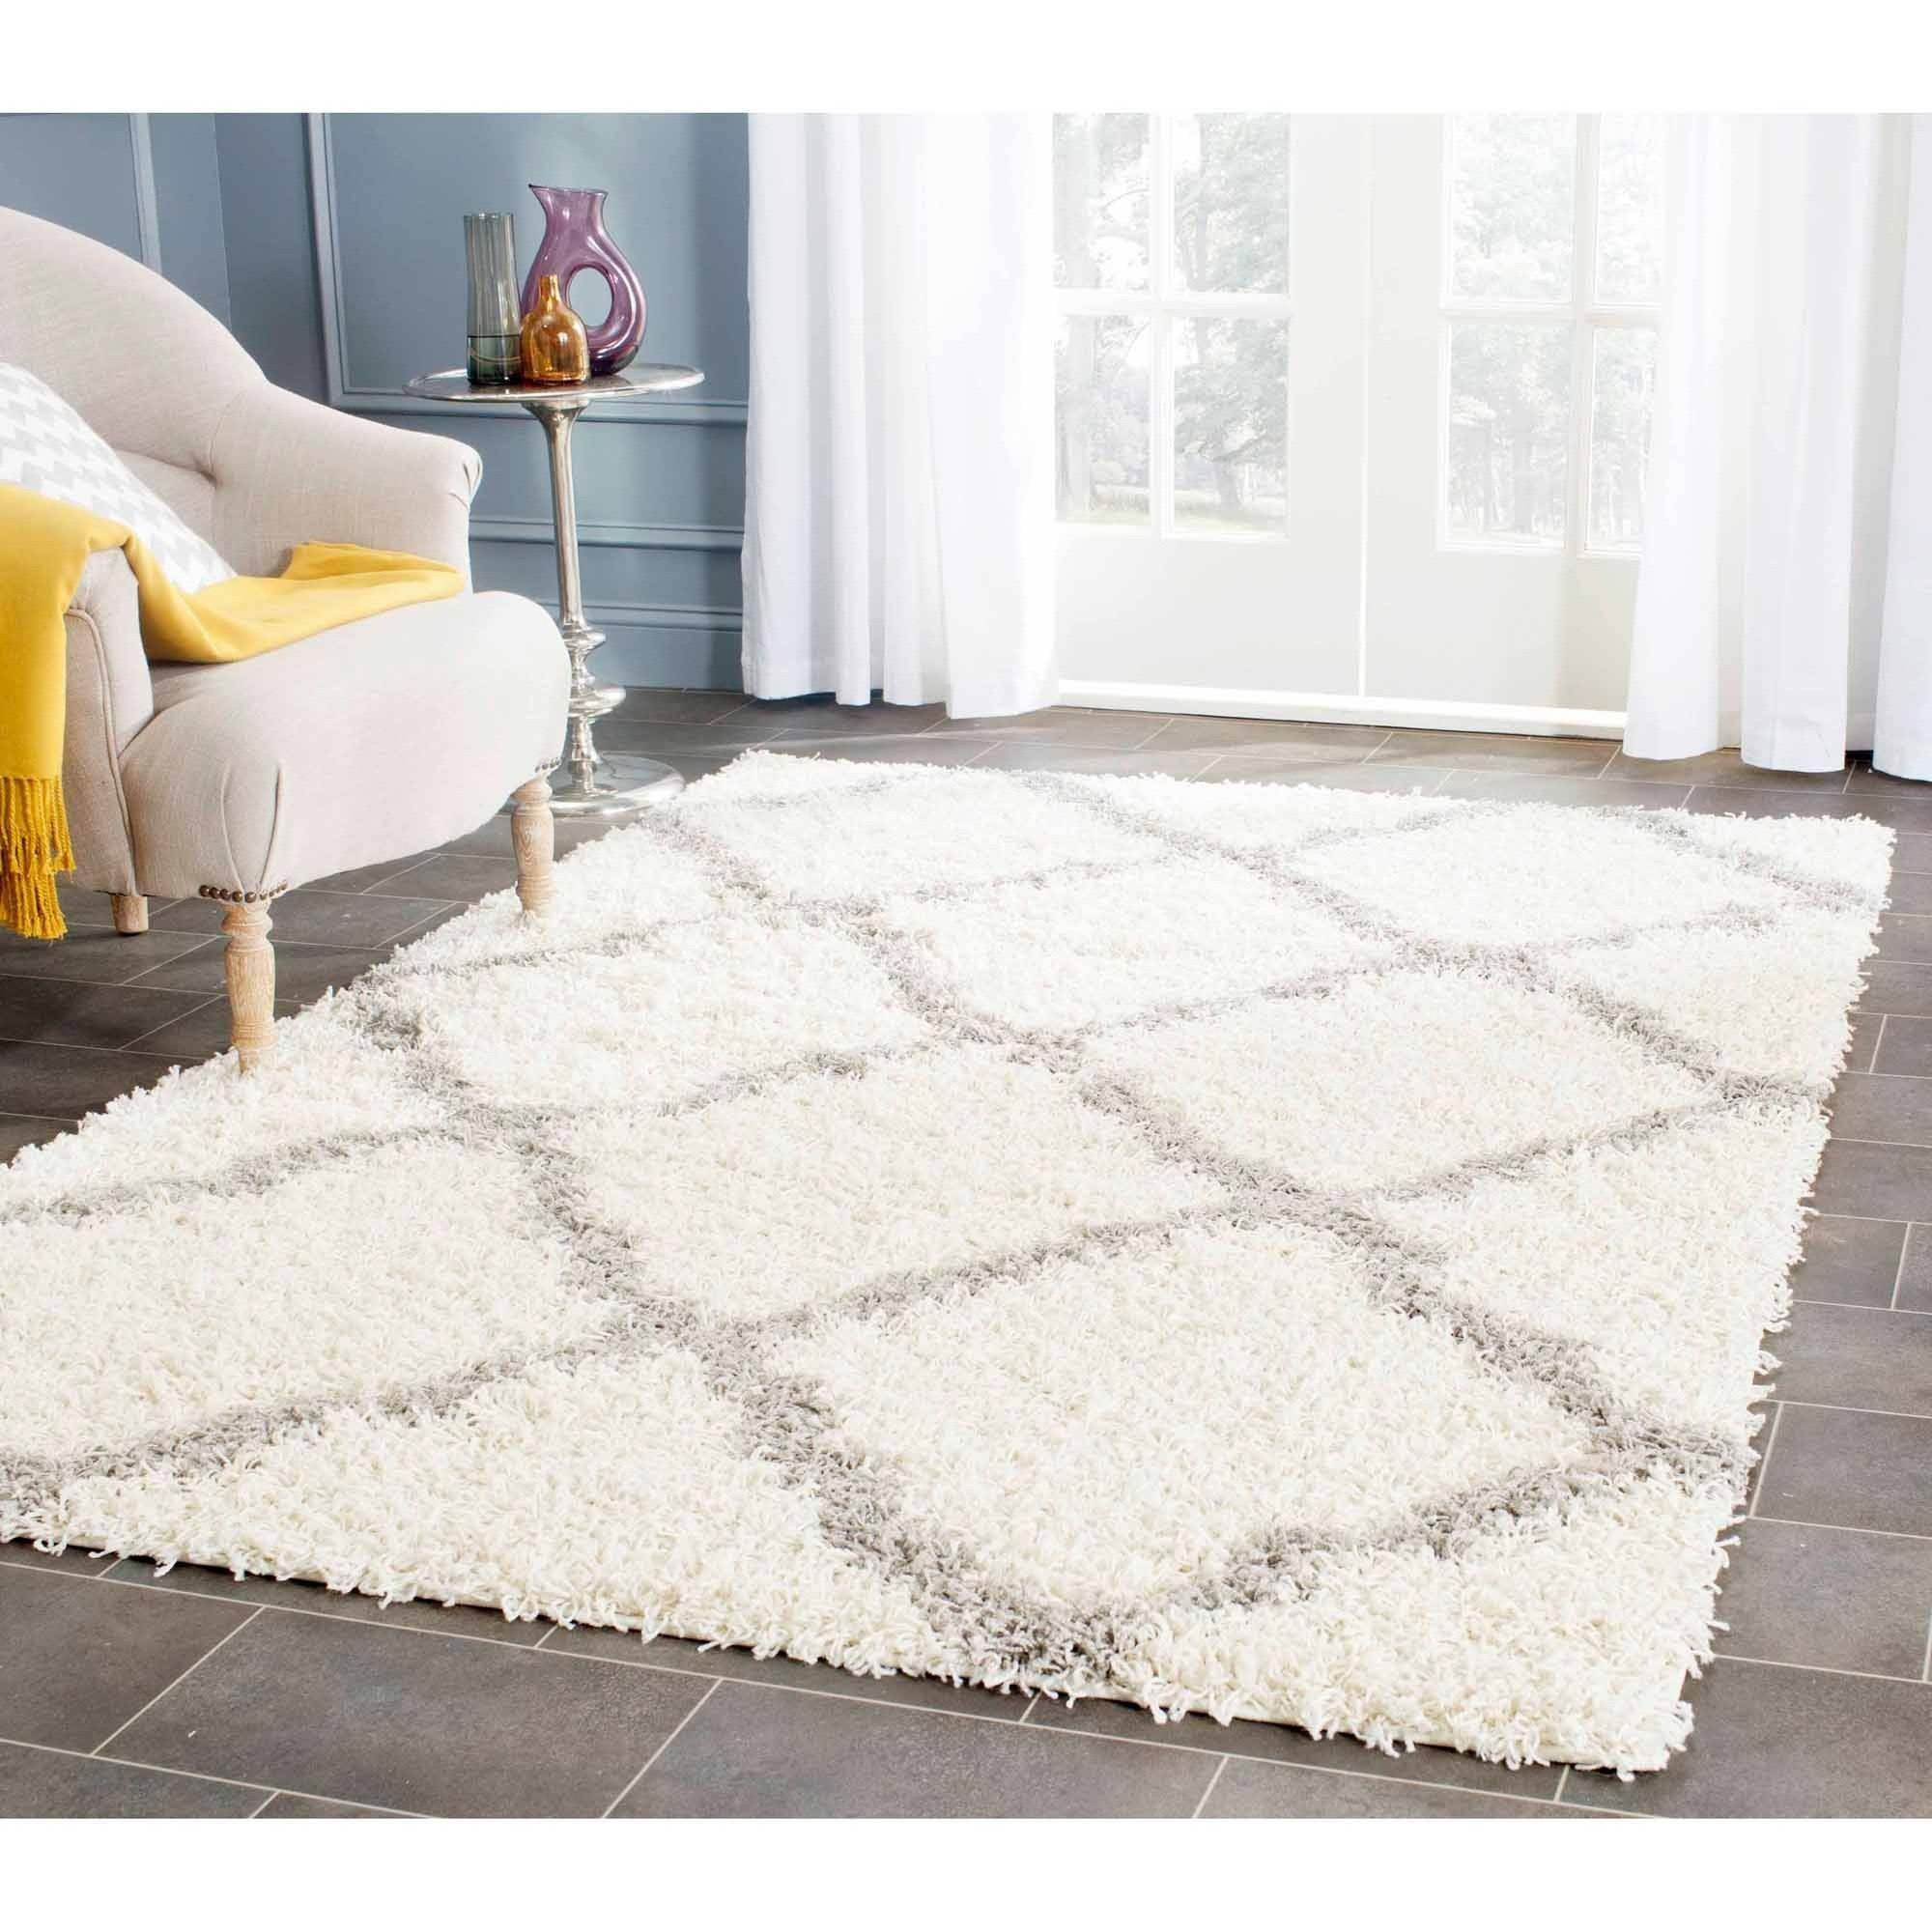 Elaborate your house spaces by filling some shag area rugs